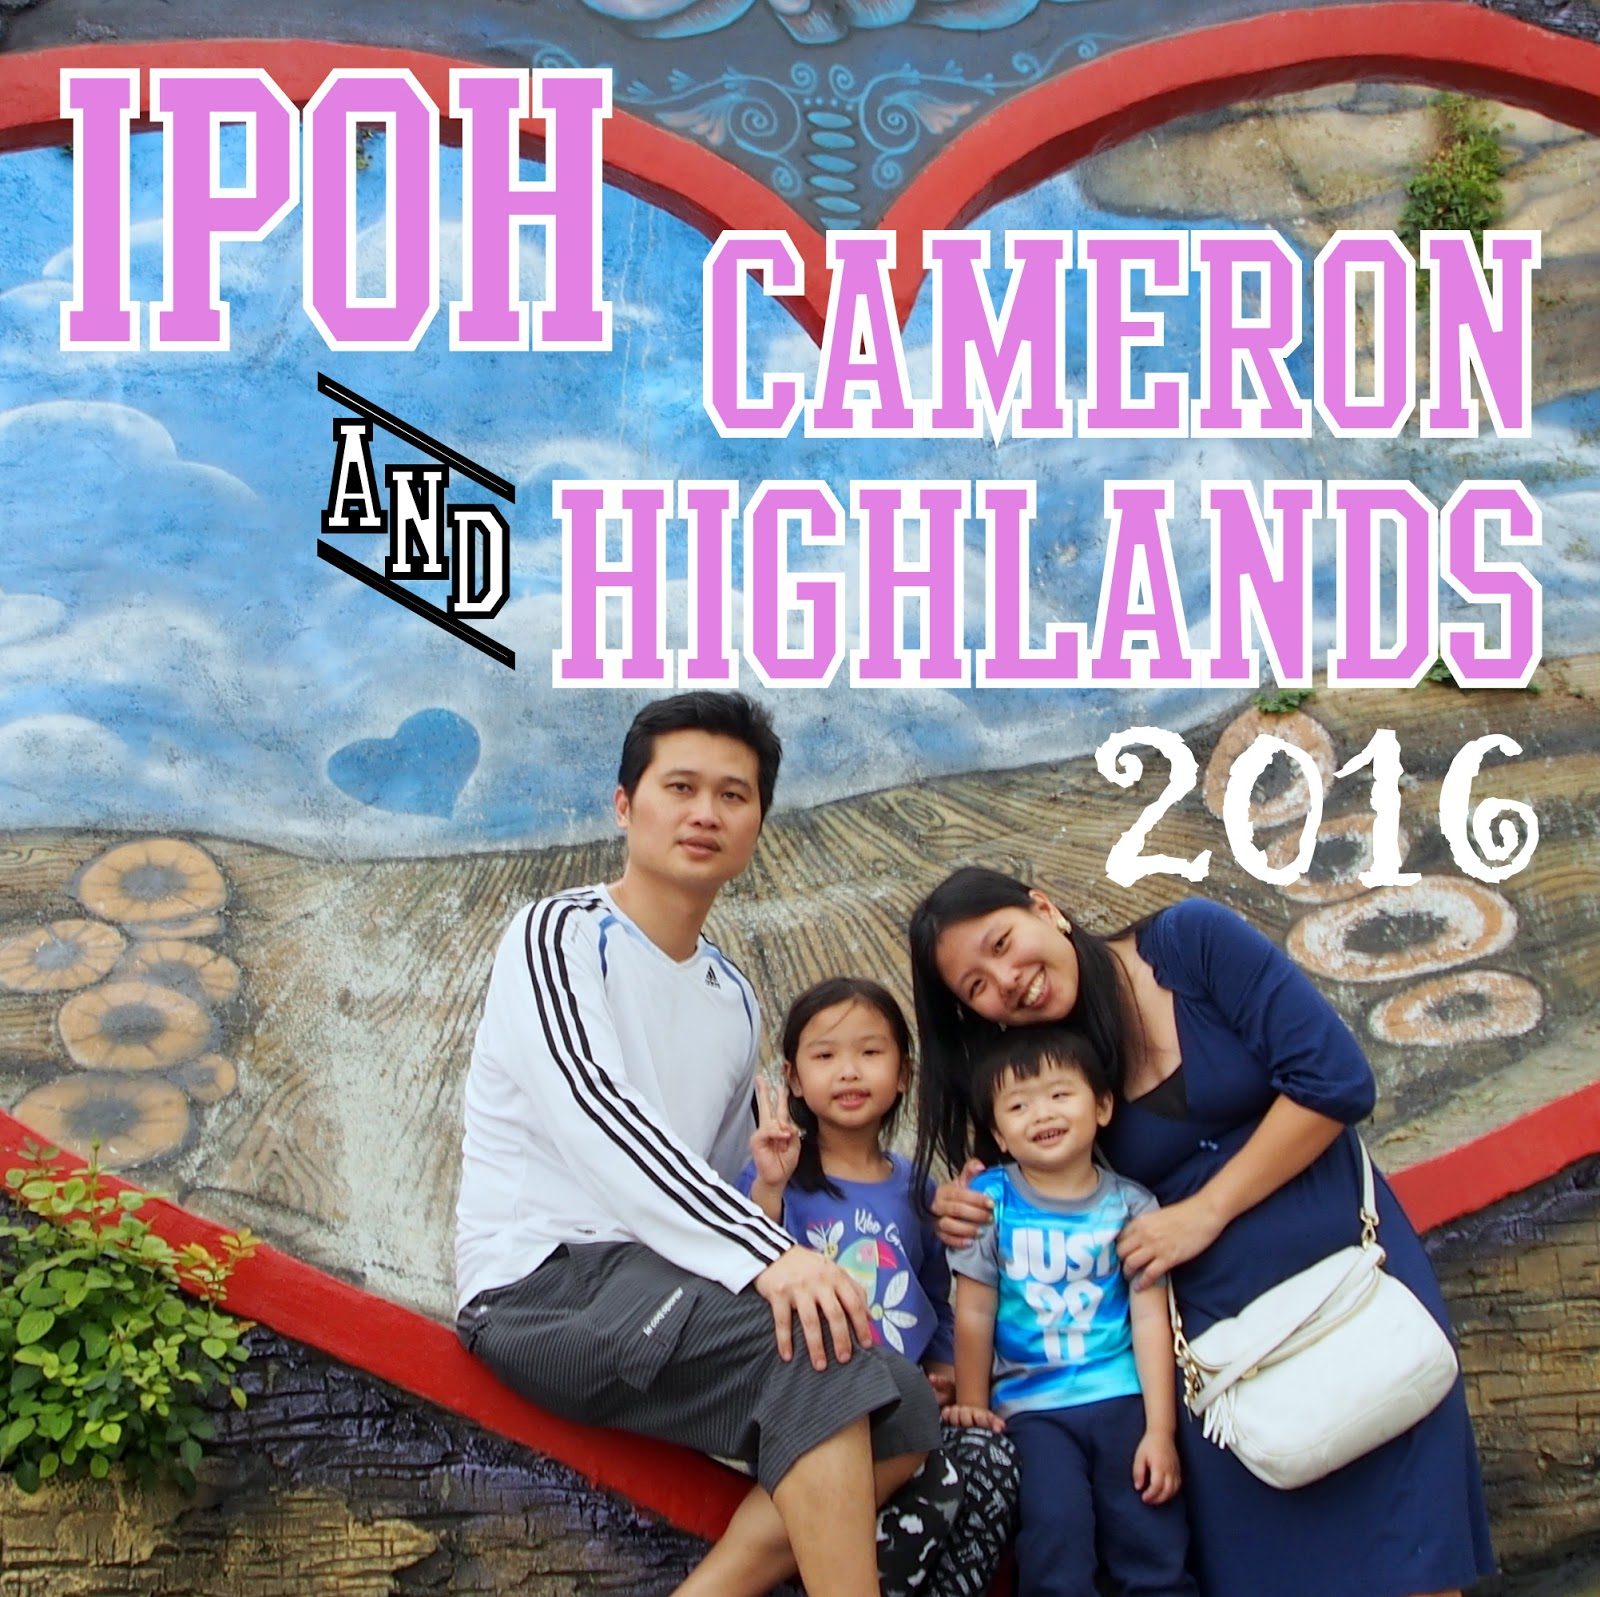 Ipoh & Cameron Highlands